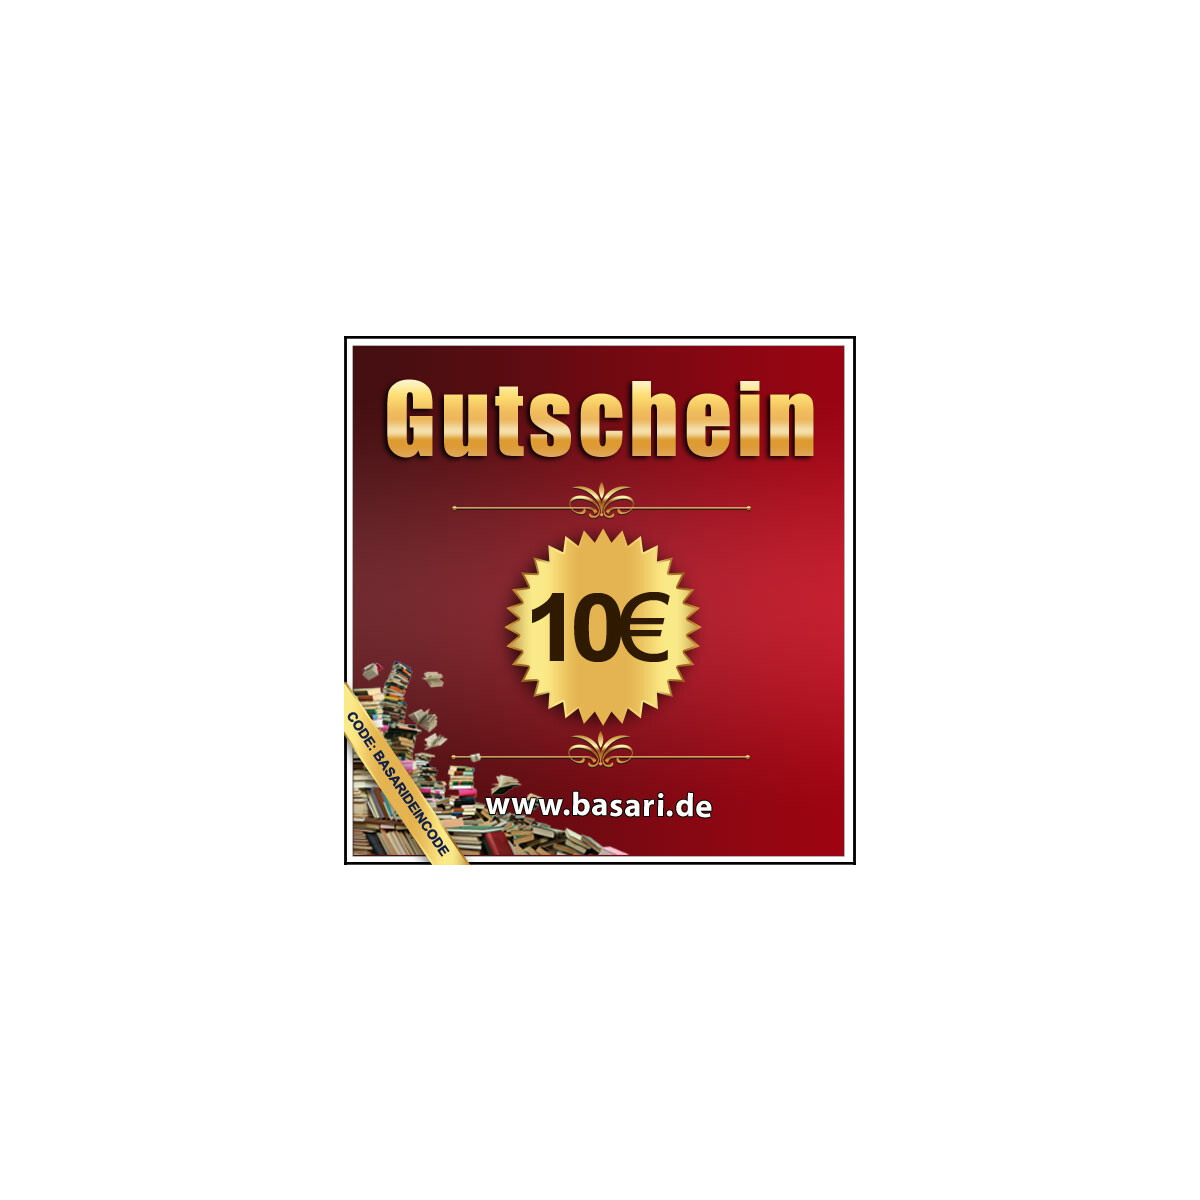 basari gutschein im wert von 10 euro 10 00. Black Bedroom Furniture Sets. Home Design Ideas